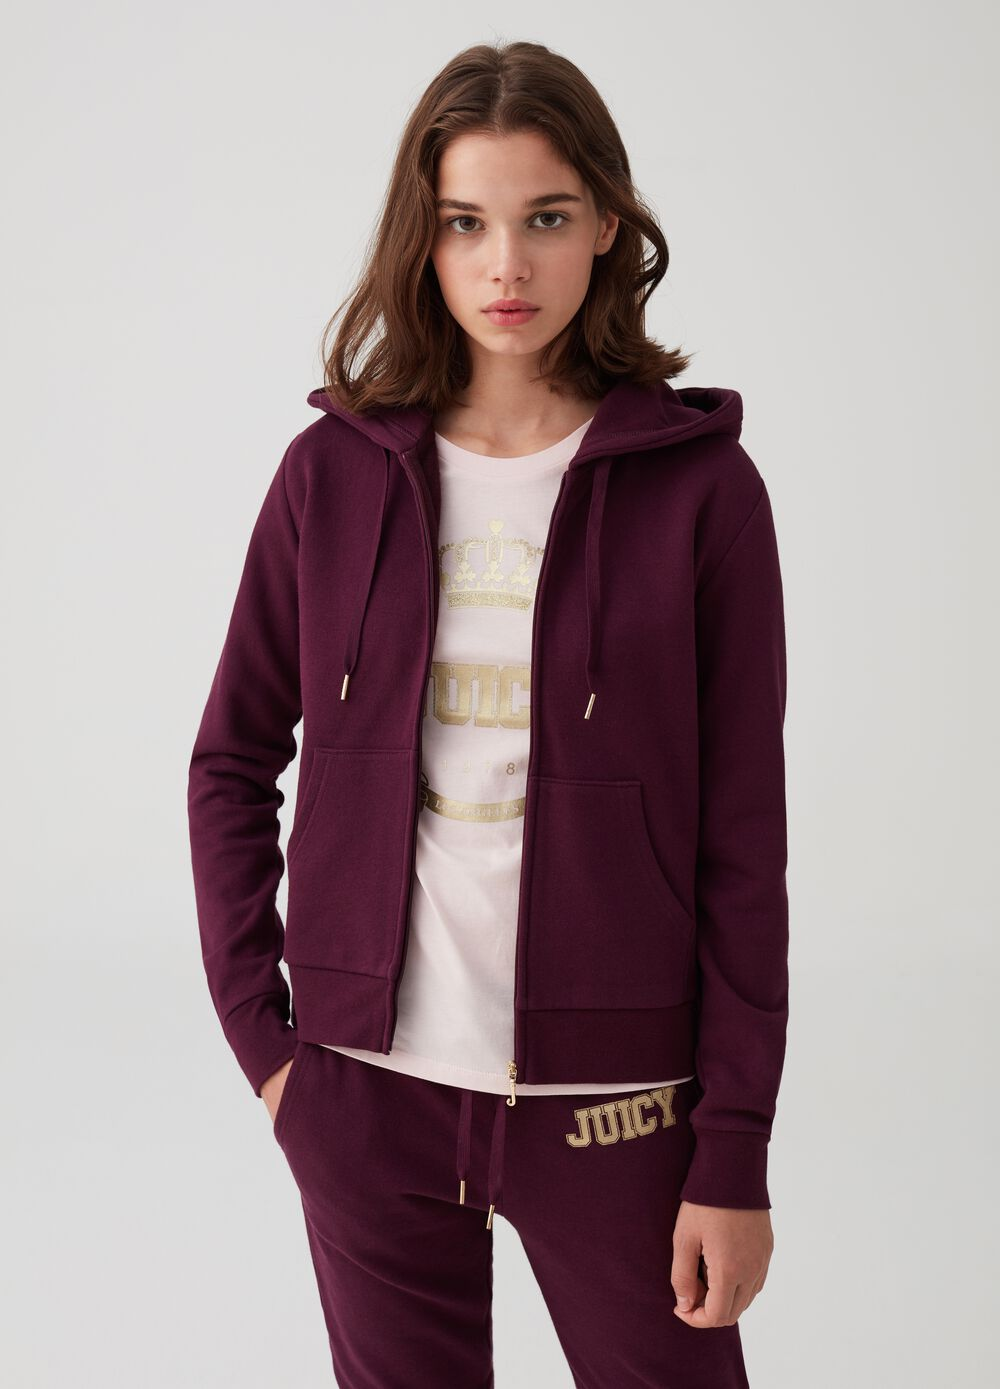 Solid colour sweatshirt with glitter print